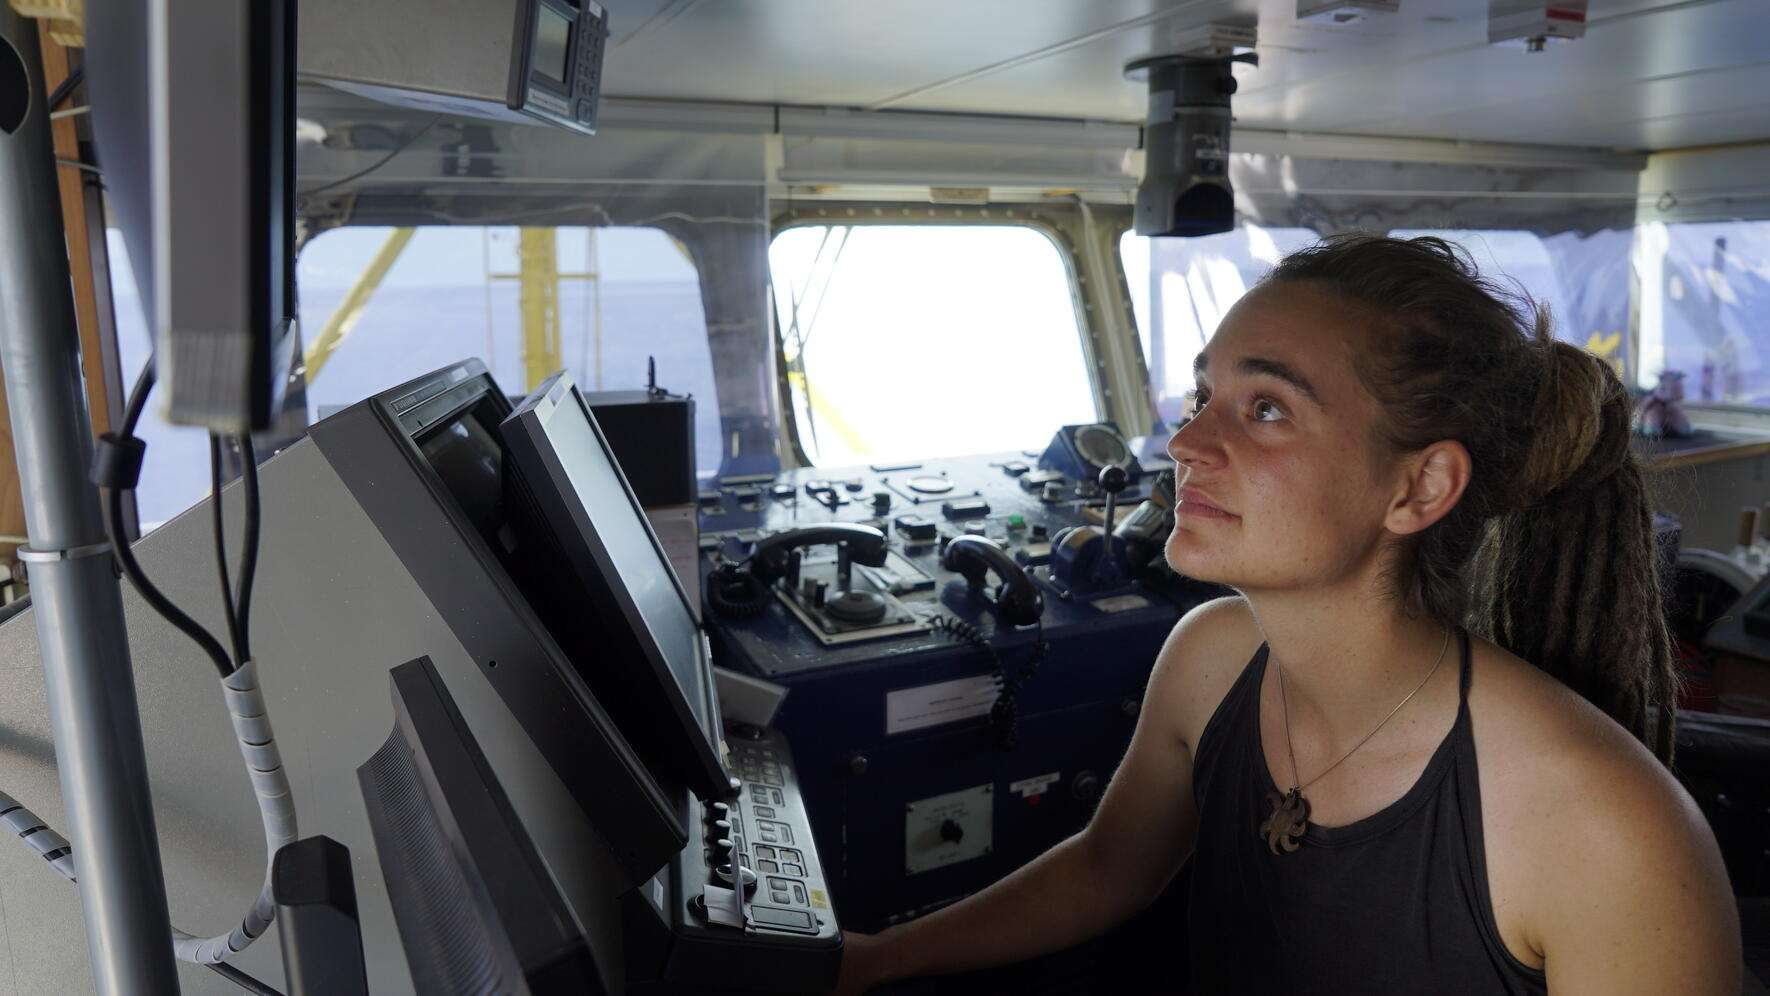 epa07676747 A handout photo made available by Sea-Watch on 27 June 2019 shows Sea-Watch 3 captain Carola Rackete on board the vessel at sea in the Mediterranean, 20 June 2019. Migrant rescue ship Sea-Watch 3, despite the threat of a fine by the Italian government, decided on 26 June 2019 to enter Italian territorial waters near the island of Lampedusa with dozens of migrants on board waiting to disembark.  EPA/TILL M. EGEN/SEA-WATCH HANDOUT  HANDOUT EDITORIAL USE ONLY/NO SALES